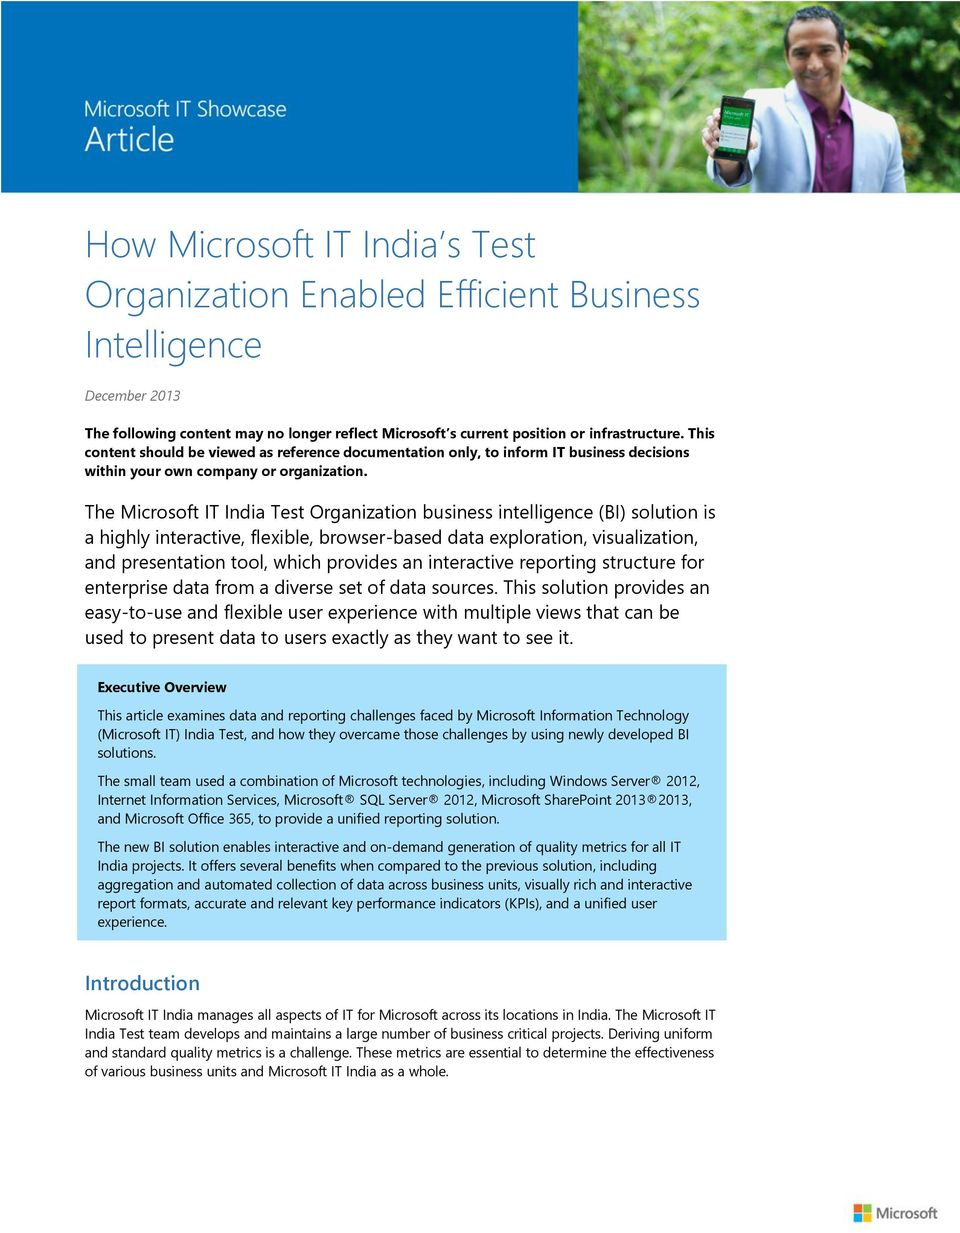 The Microsoft IT India Test Organization business intelligence (BI) solution is a highly interactive, flexible, browser-based data exploration, visualization, and presentation tool, which provides an